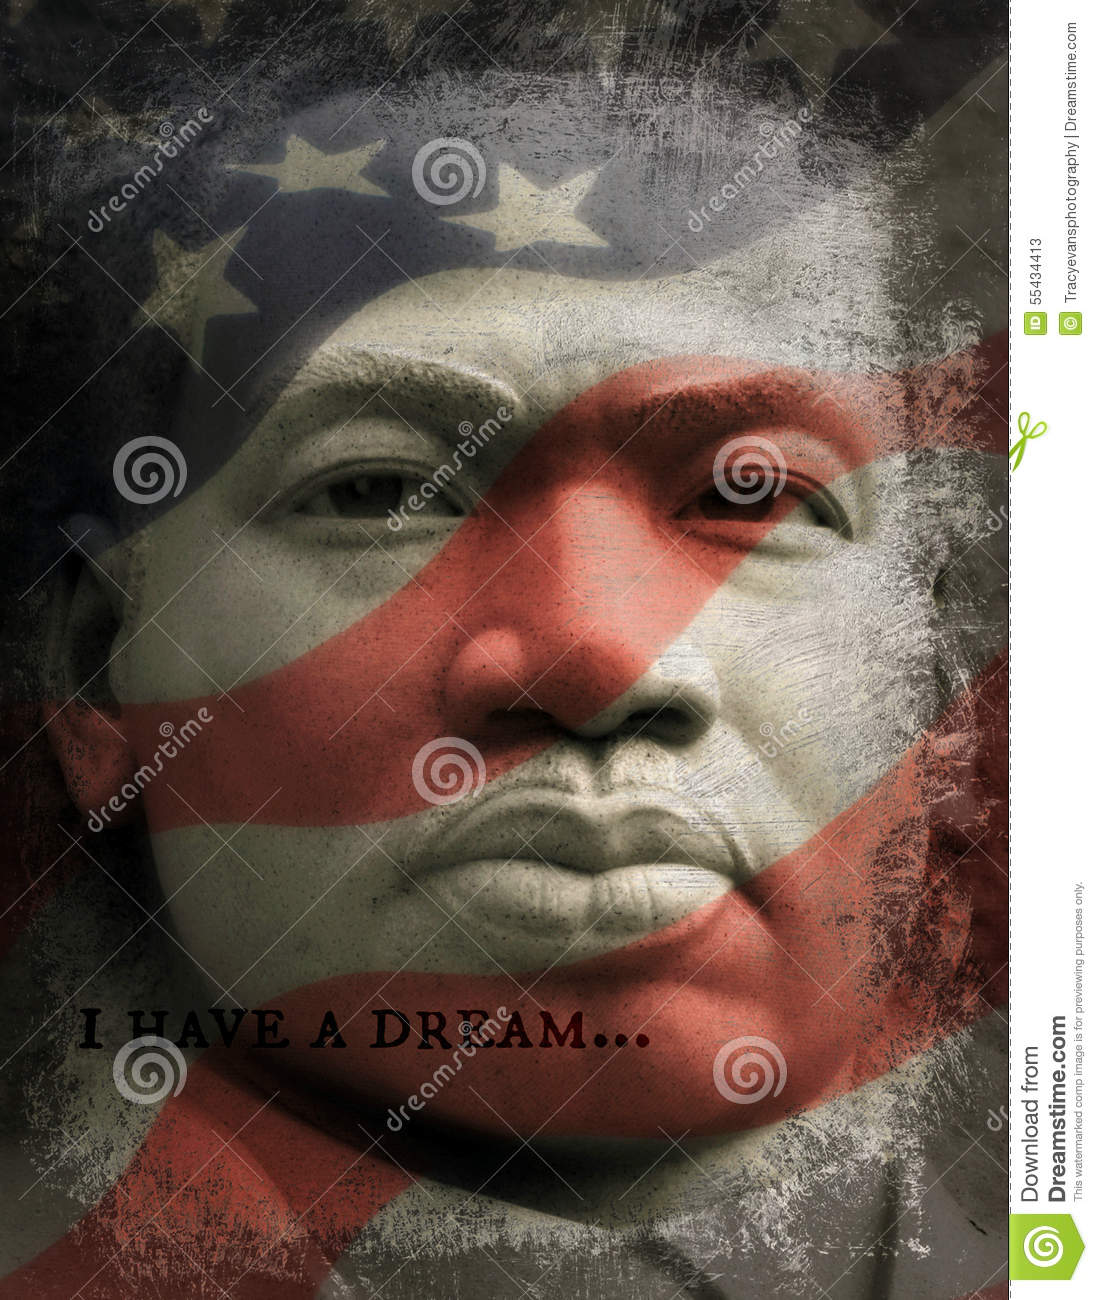 I Have A Dream Martin Luther King Jr Editorial Stock